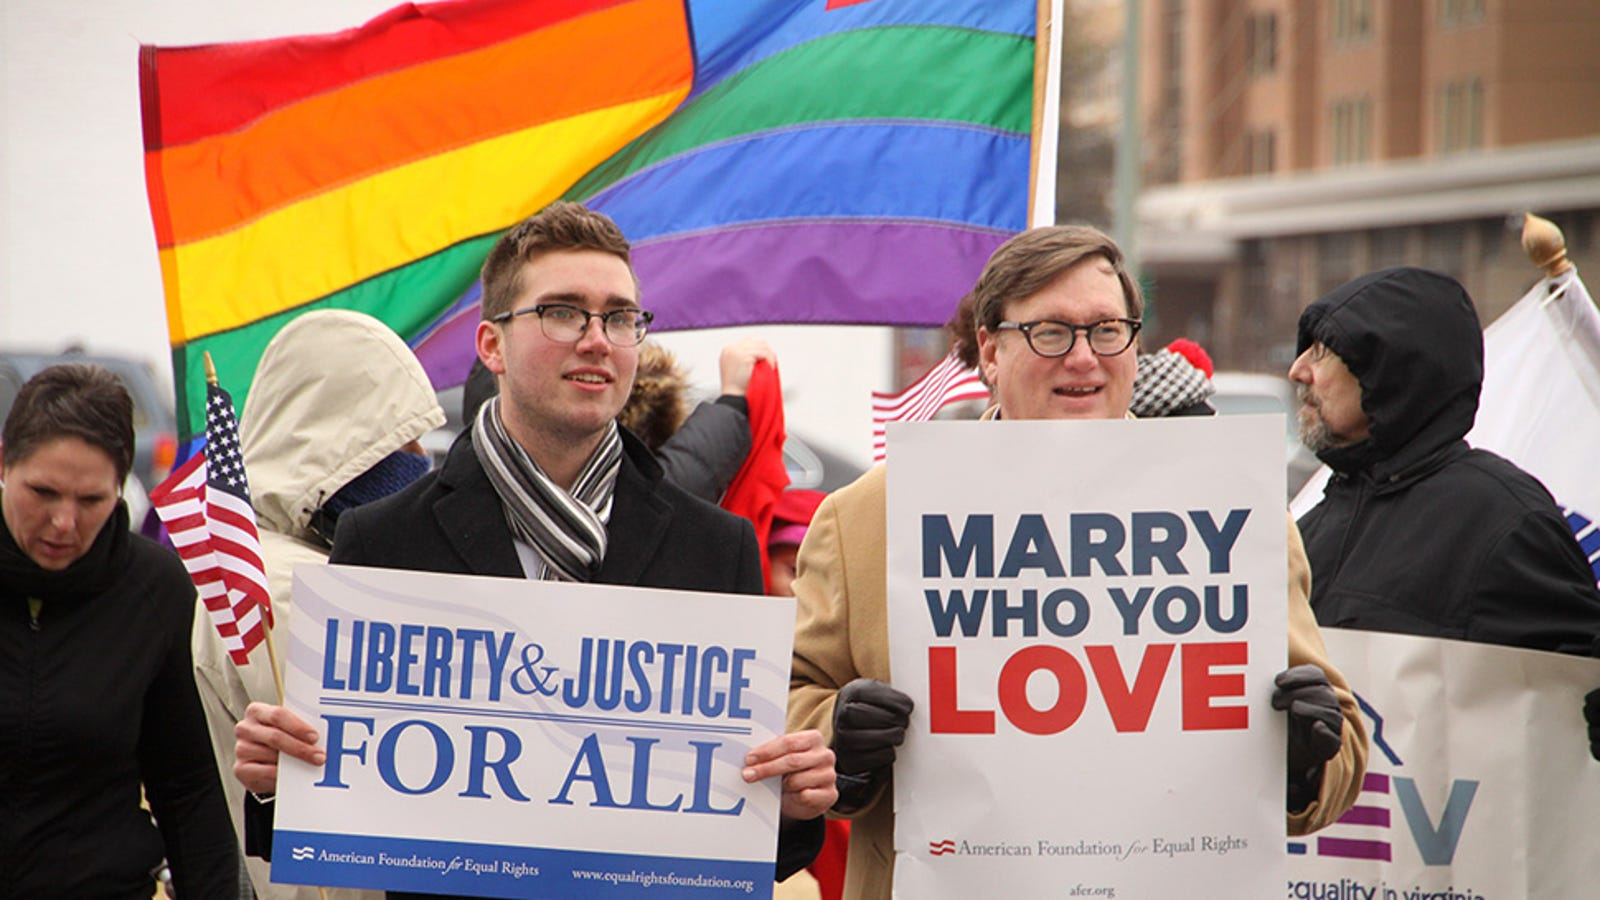 from Royal federalism and gay marriage